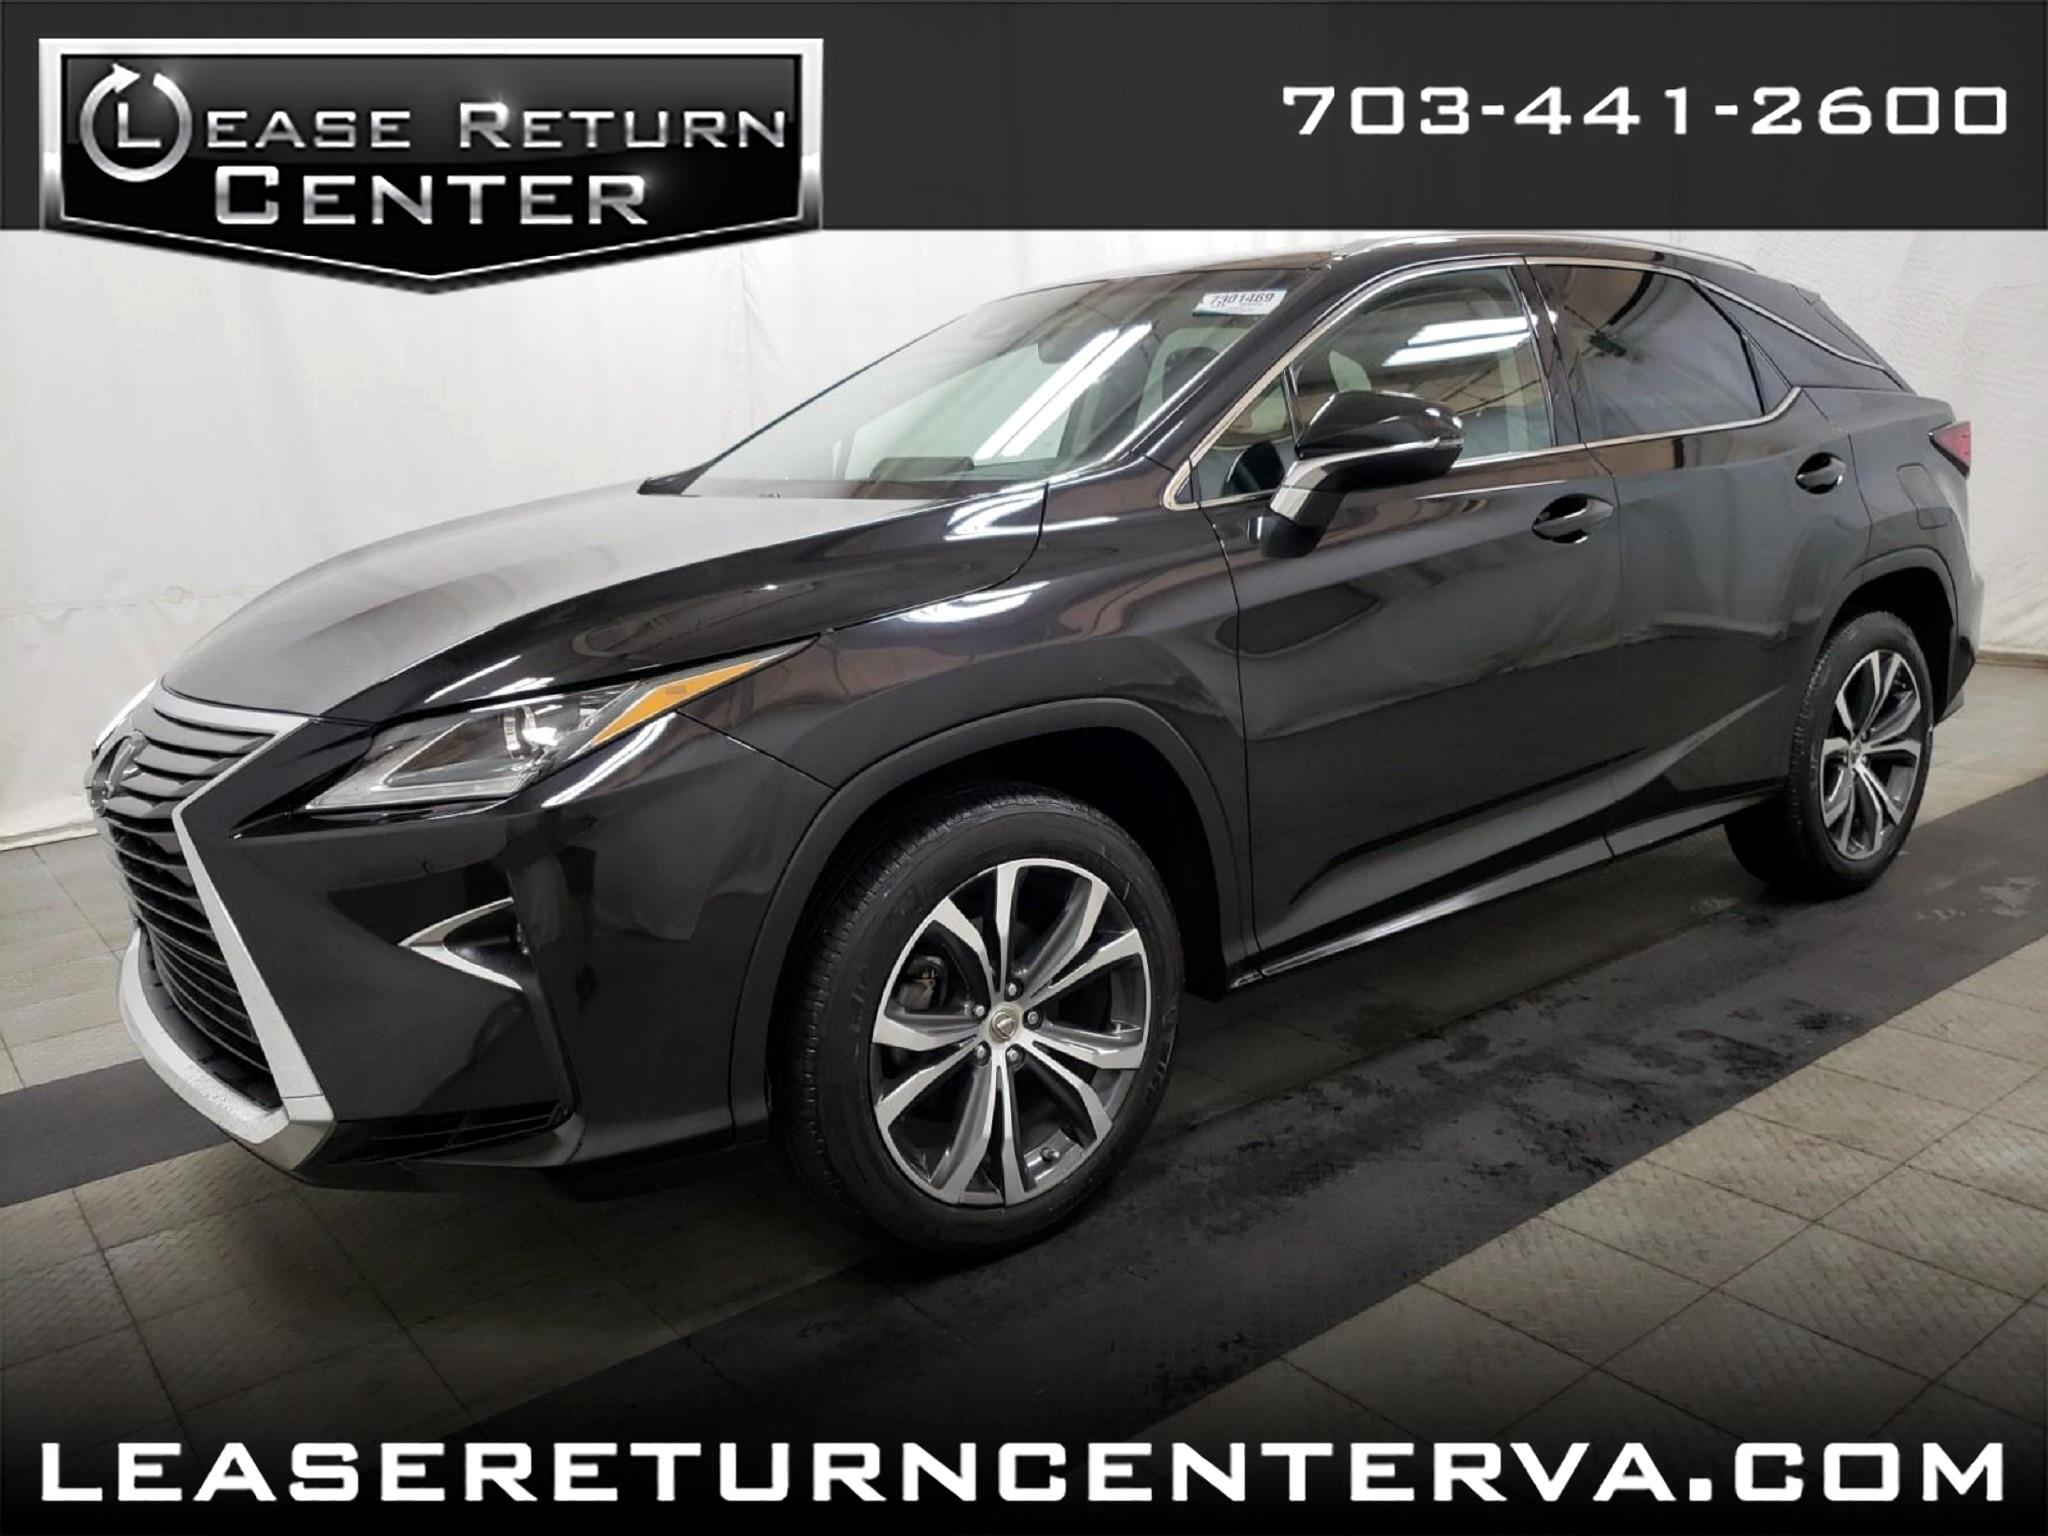 2016 Lexus RX 350 AWD Premium Package